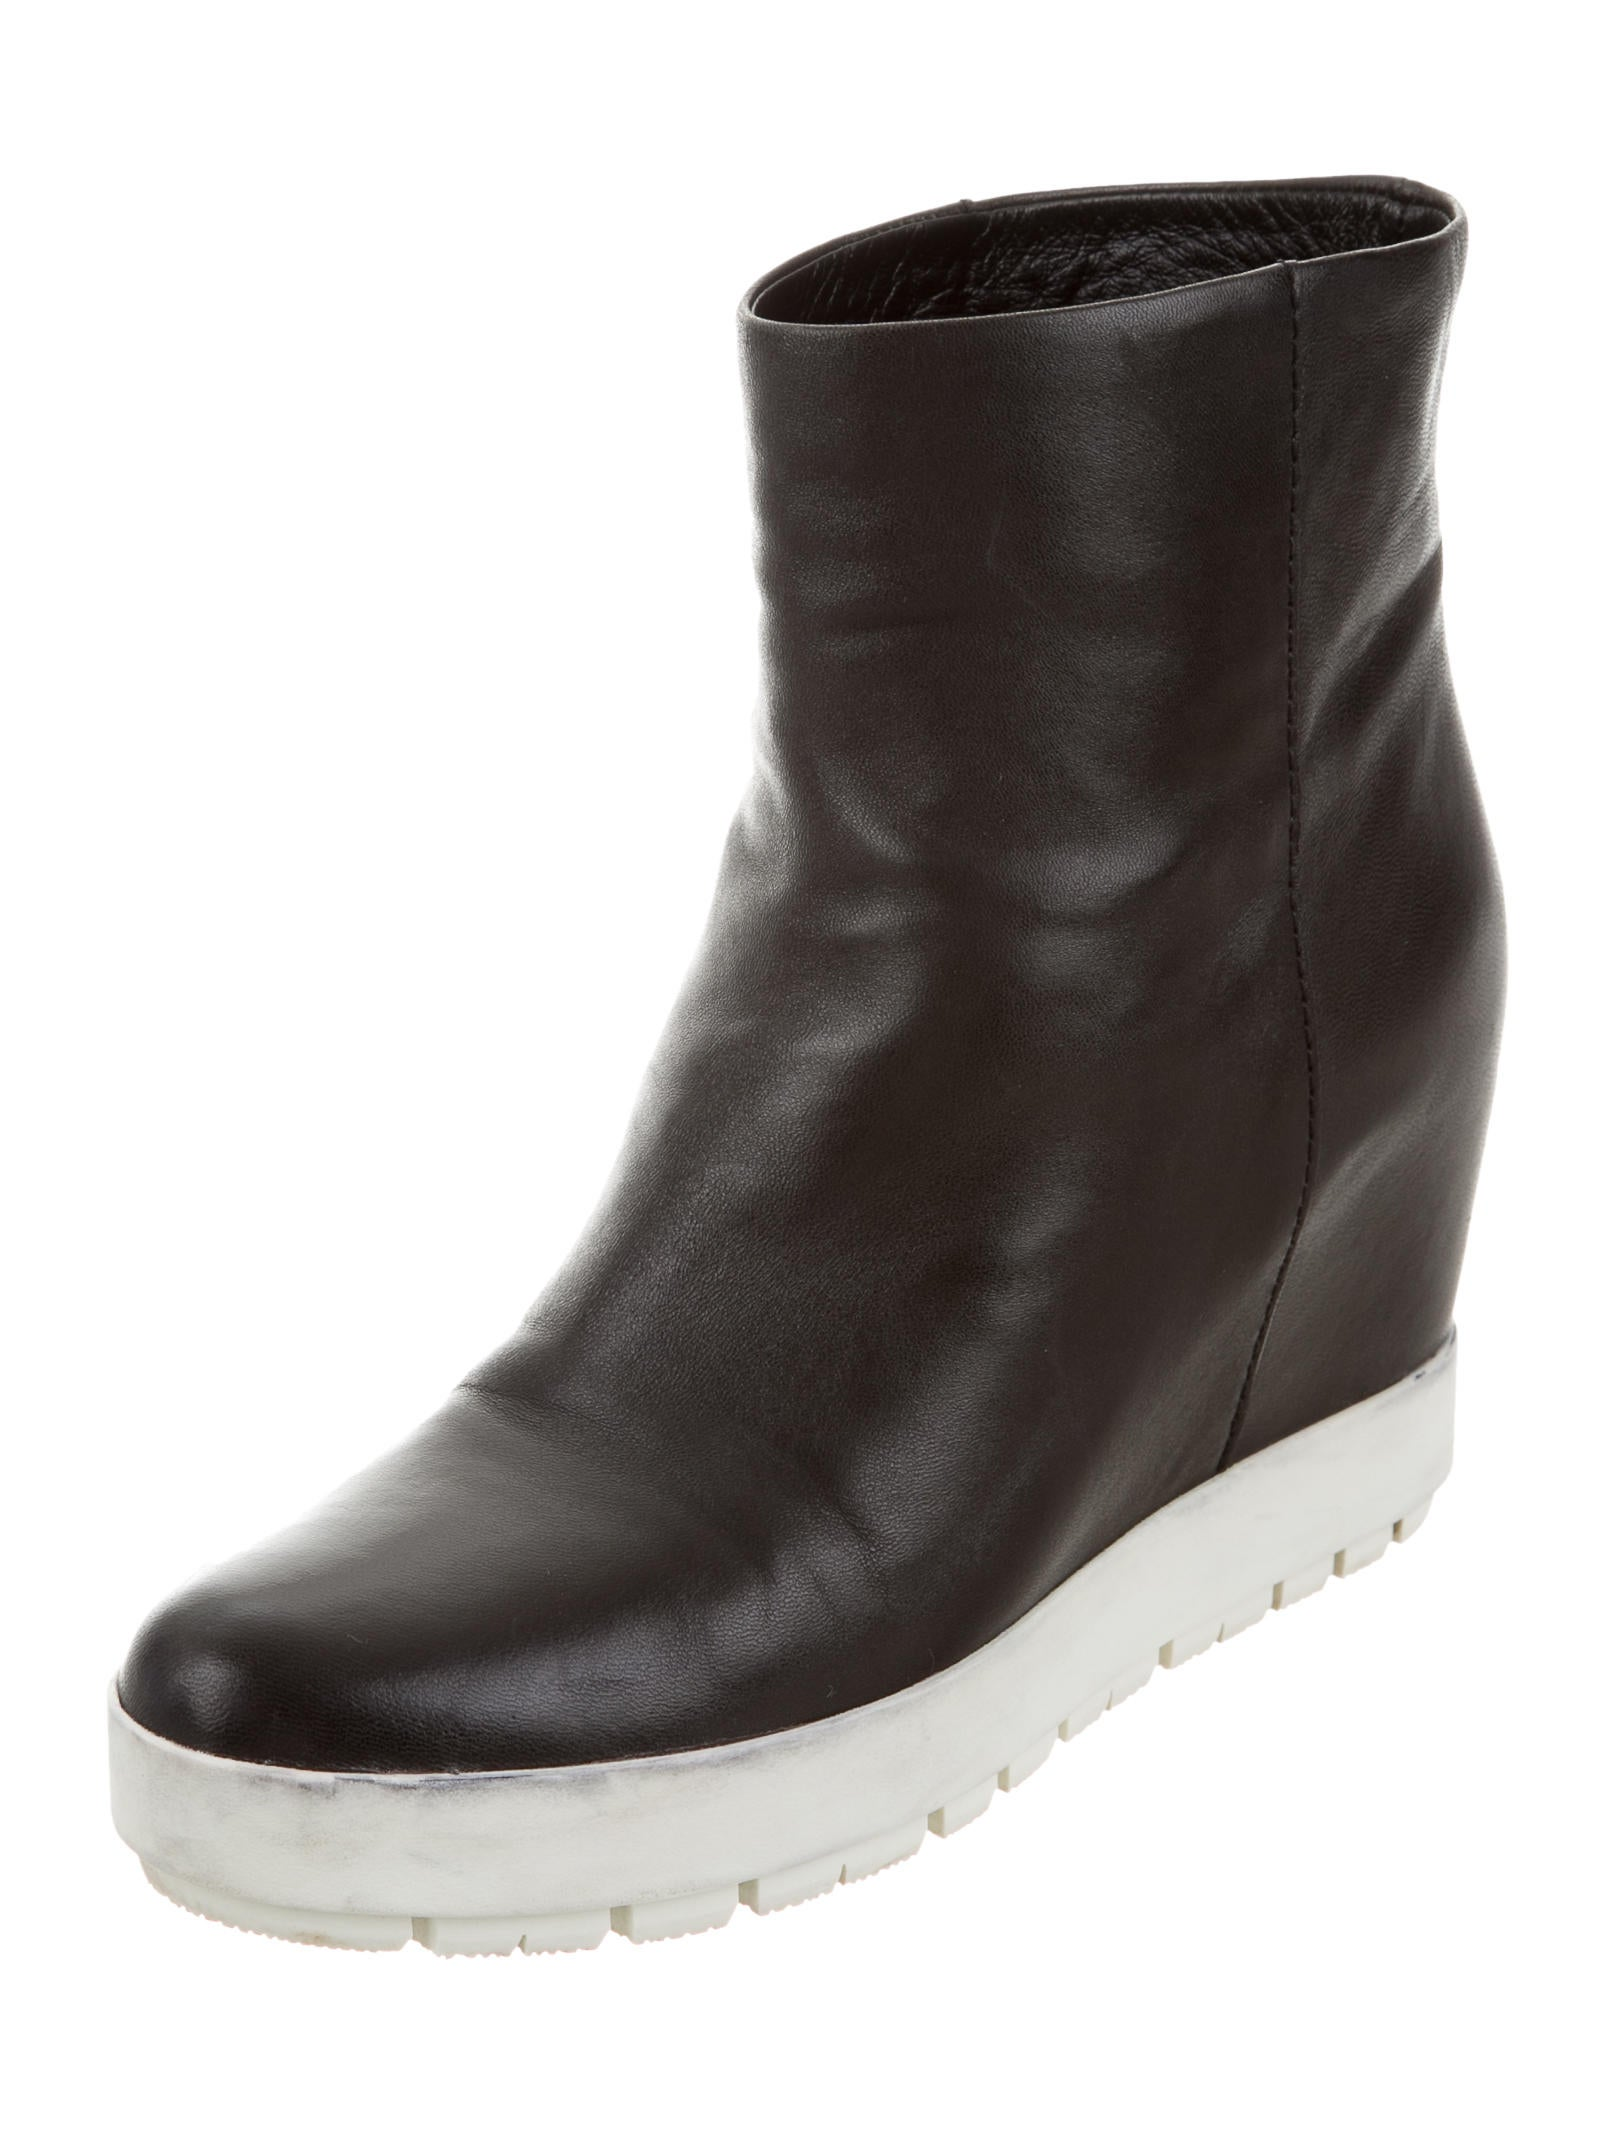 prada sport leather wedge boots shoes wpr40000 the